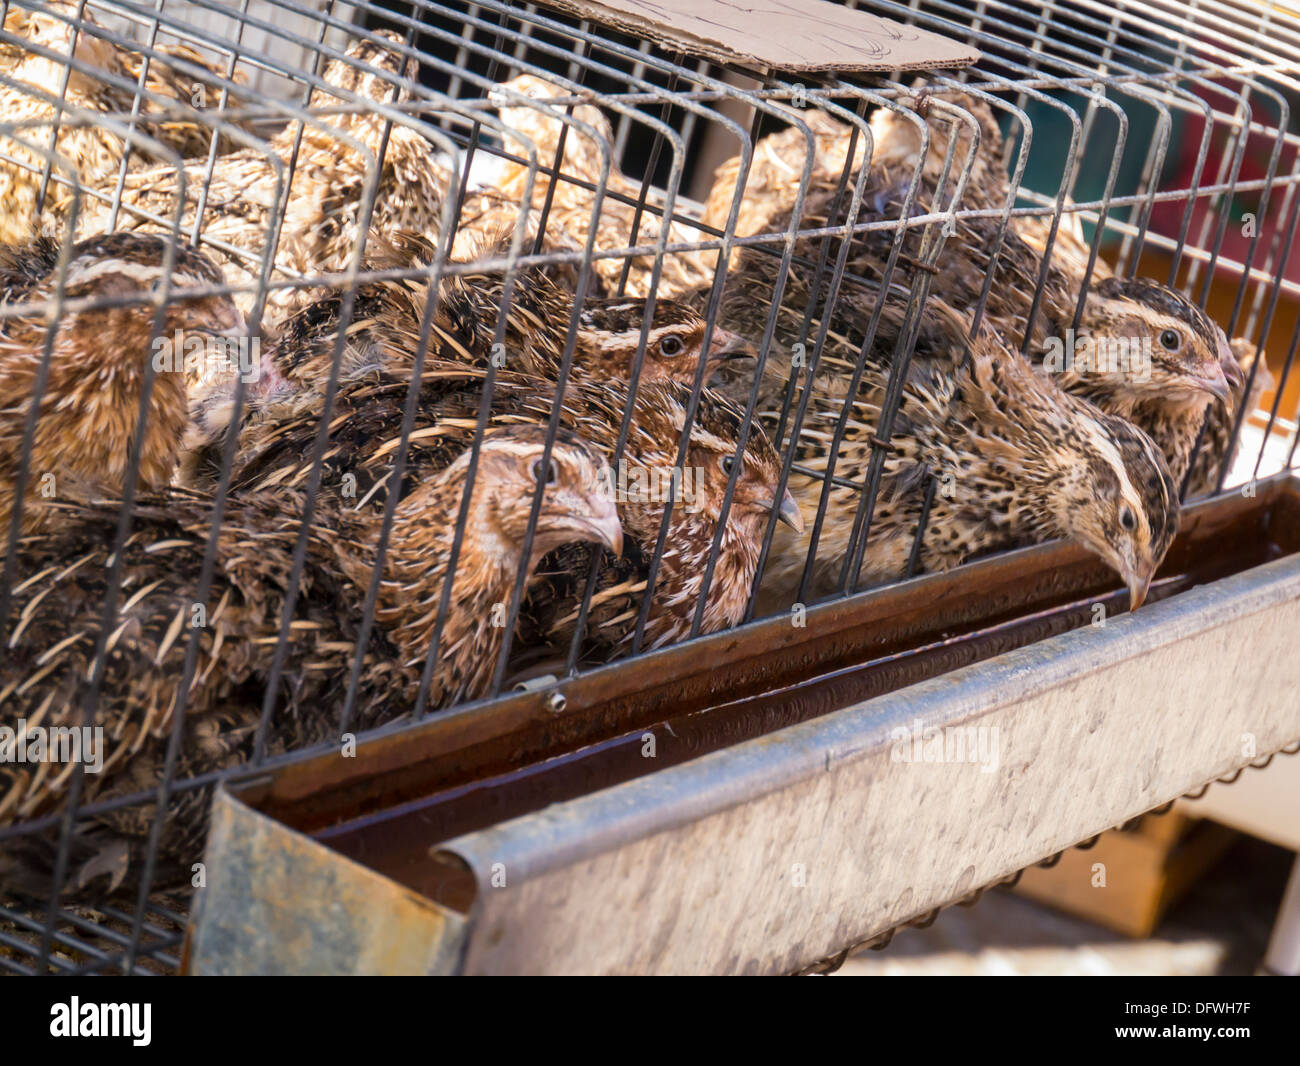 Portugal Algarve Loule market small live bird birds chick chicks grouse in cage for sale water trough food poultry Tetraoninae Phasianidae Galliformes - Stock Image